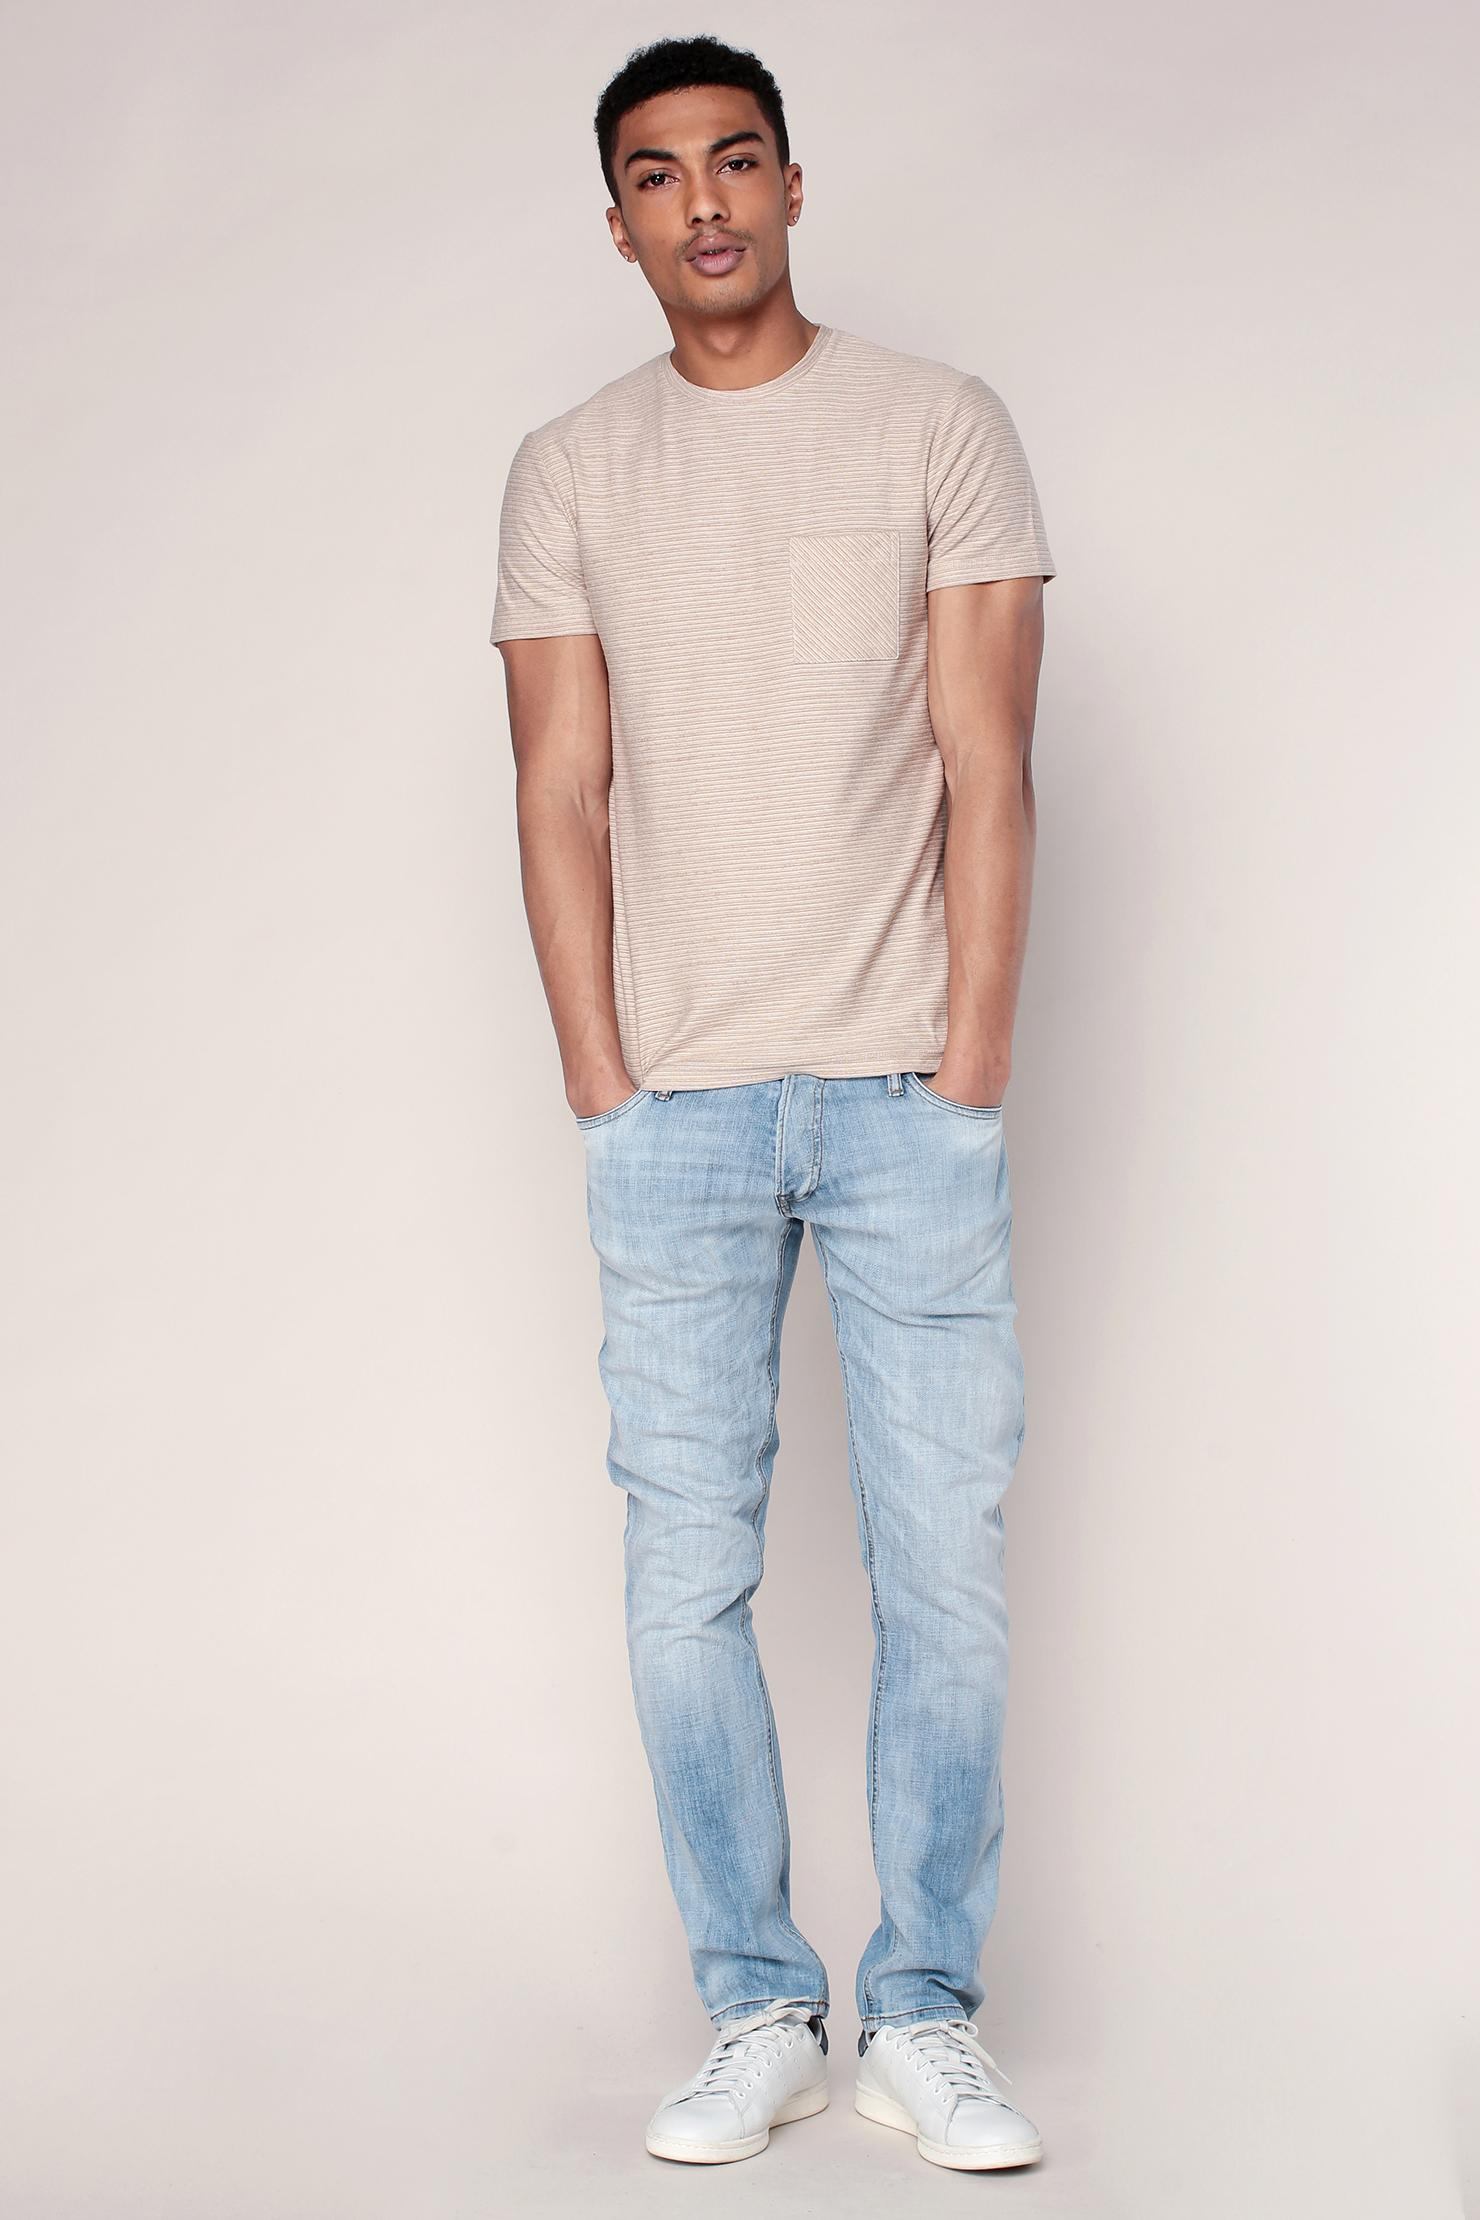 034444f4f7e Lyst - Selected T-shirt in White for Men